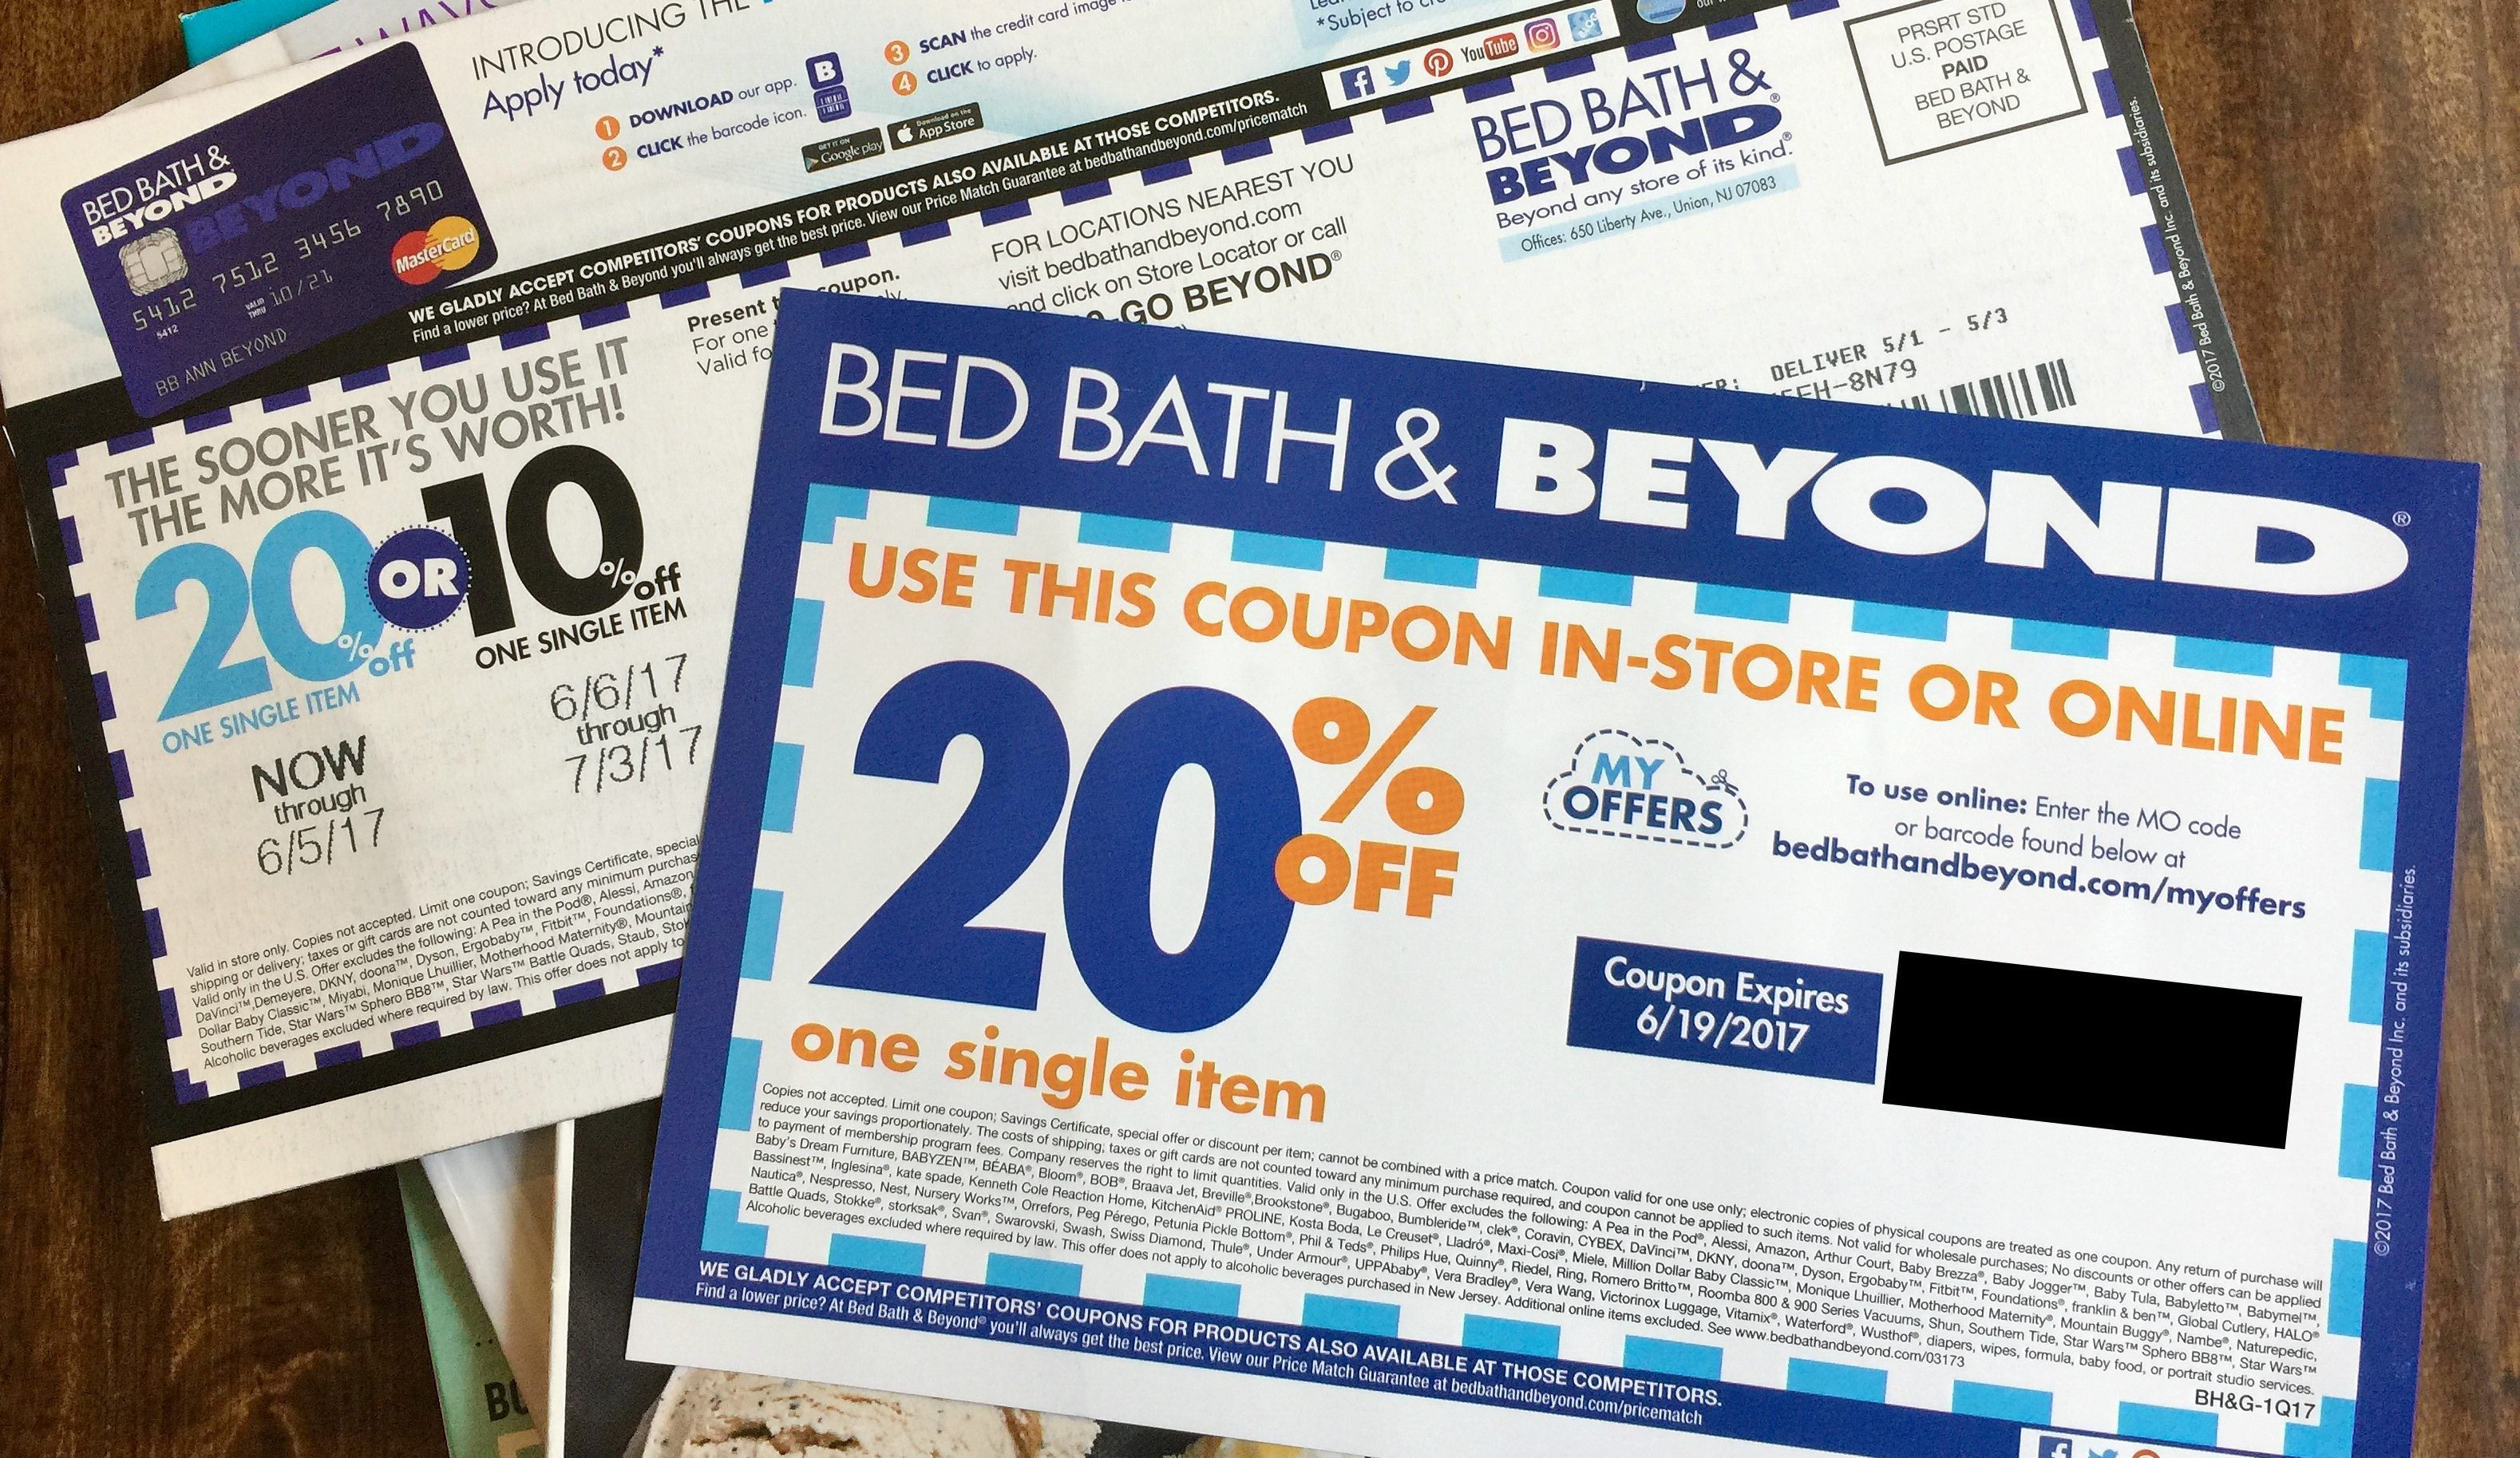 17 bed bath beyond money saving secrets - a 20% off coupon